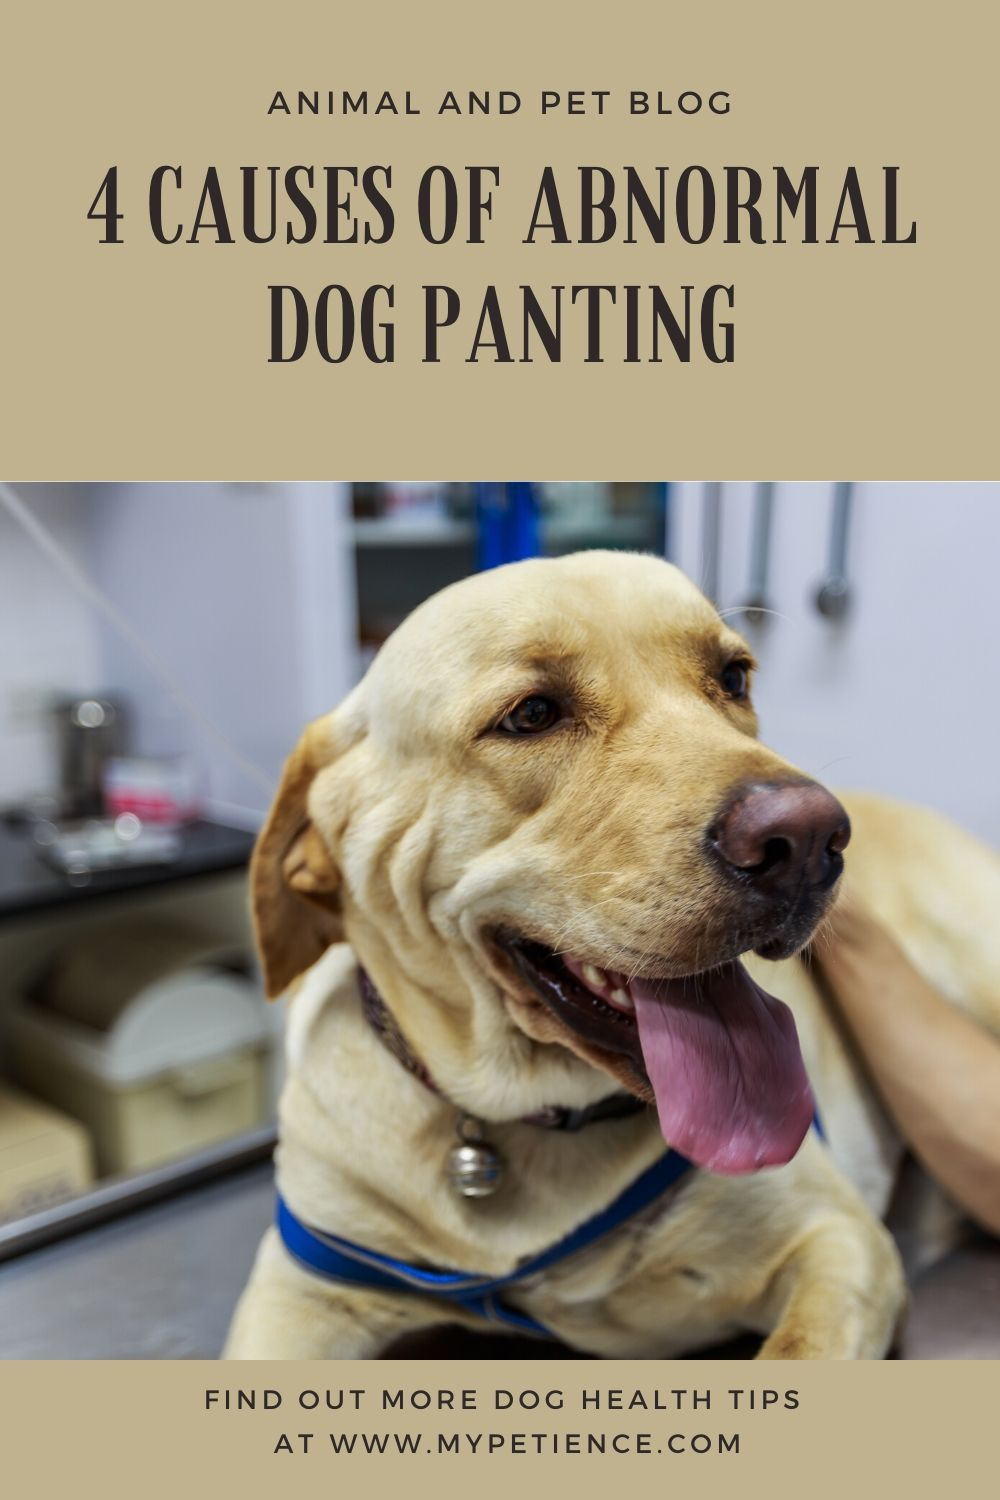 Why Is My Dog Panting and Restless? in 2020 Dog pants